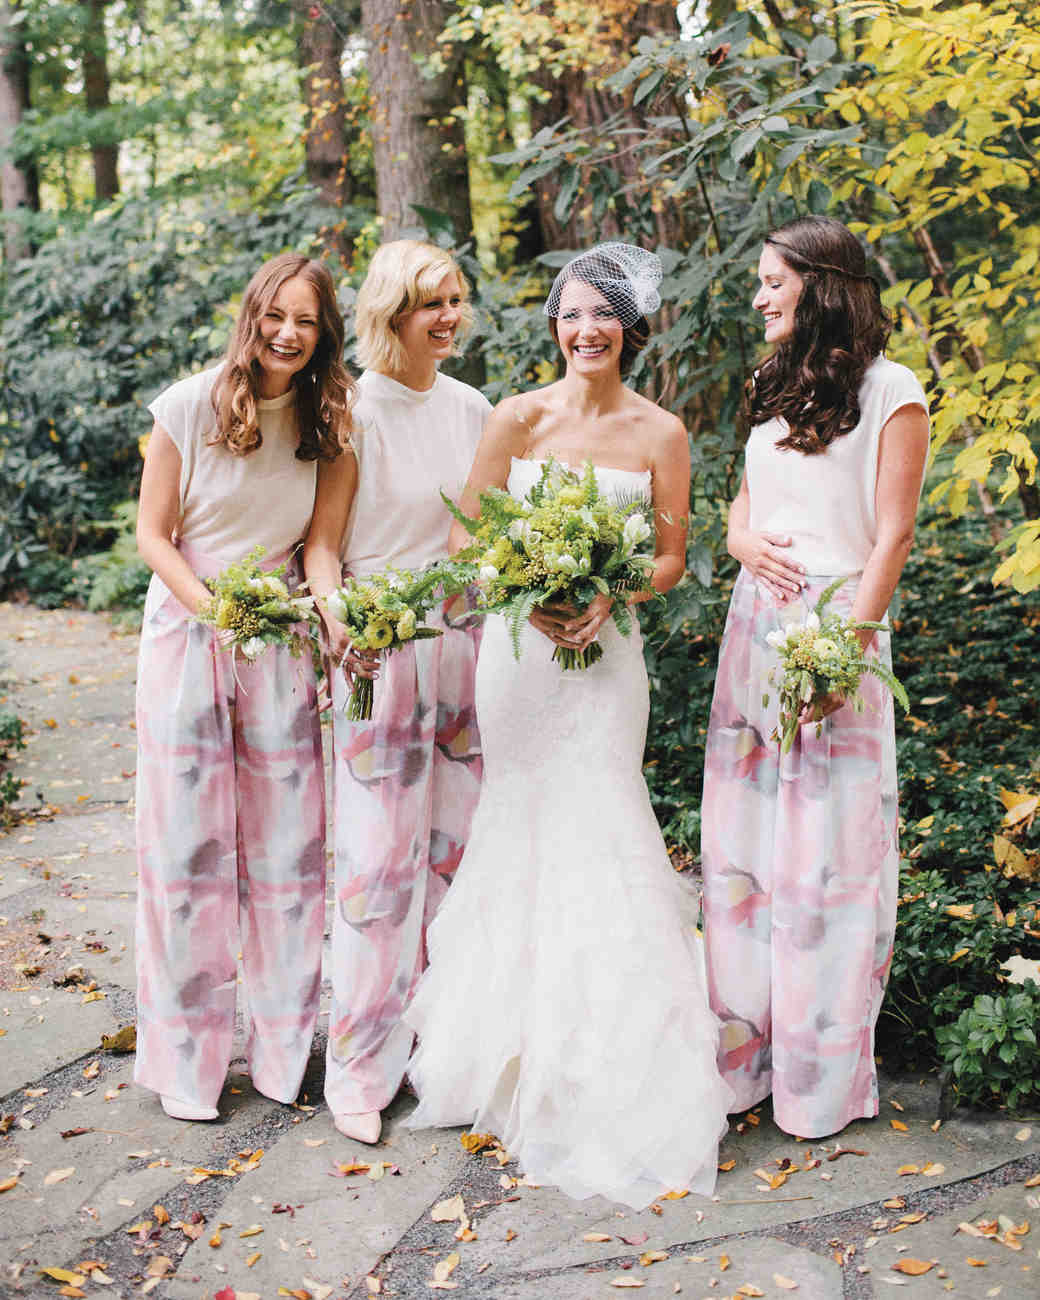 bridesmaids in white shirts and patterned pants